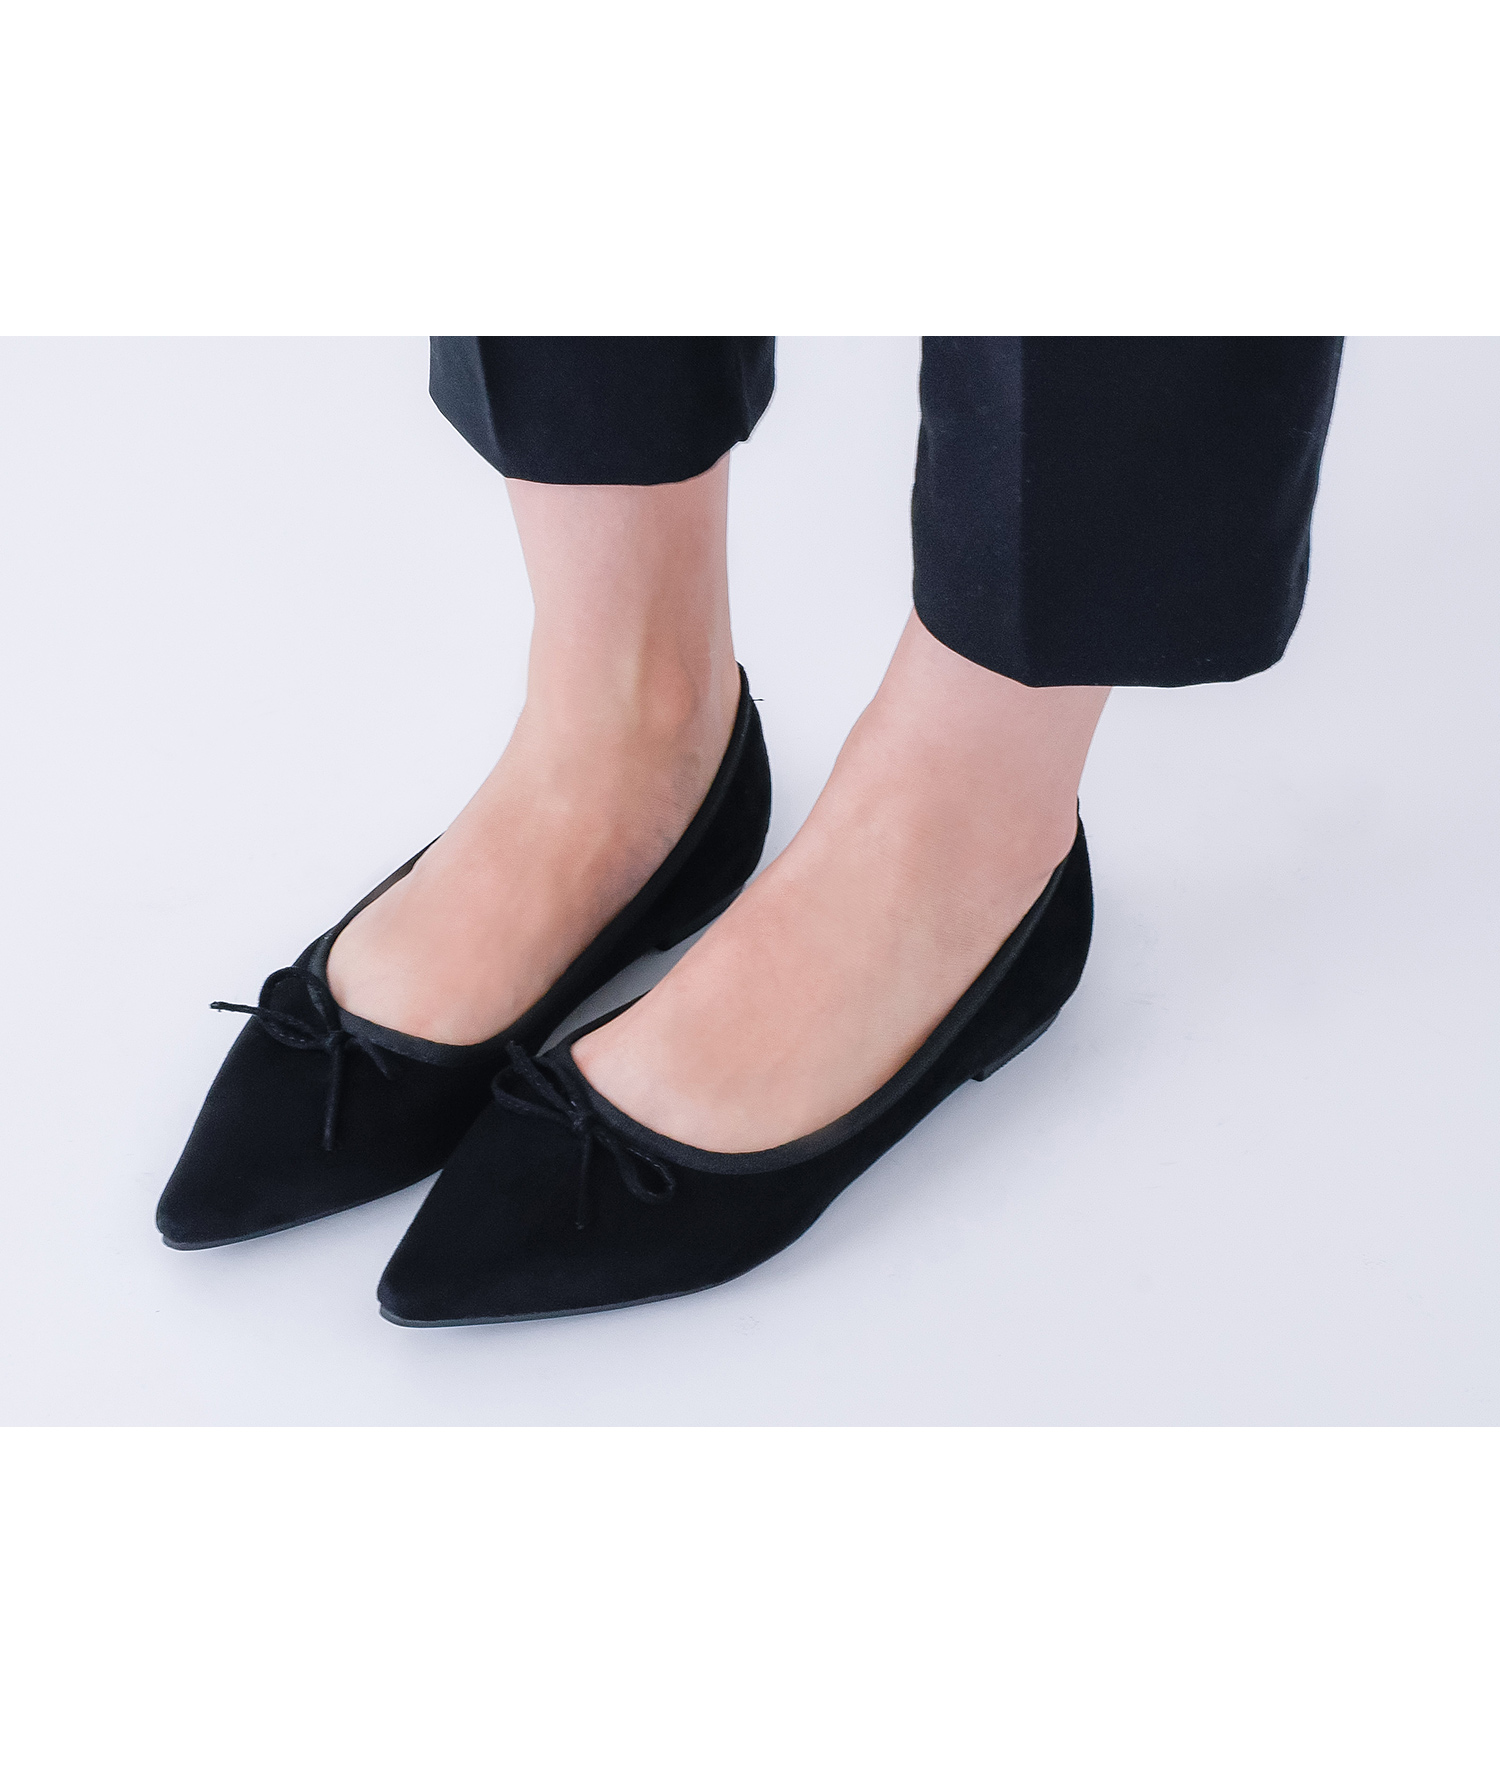 Cute Bow Pointed Toe Ballerina Flats Annakastleshoes Com